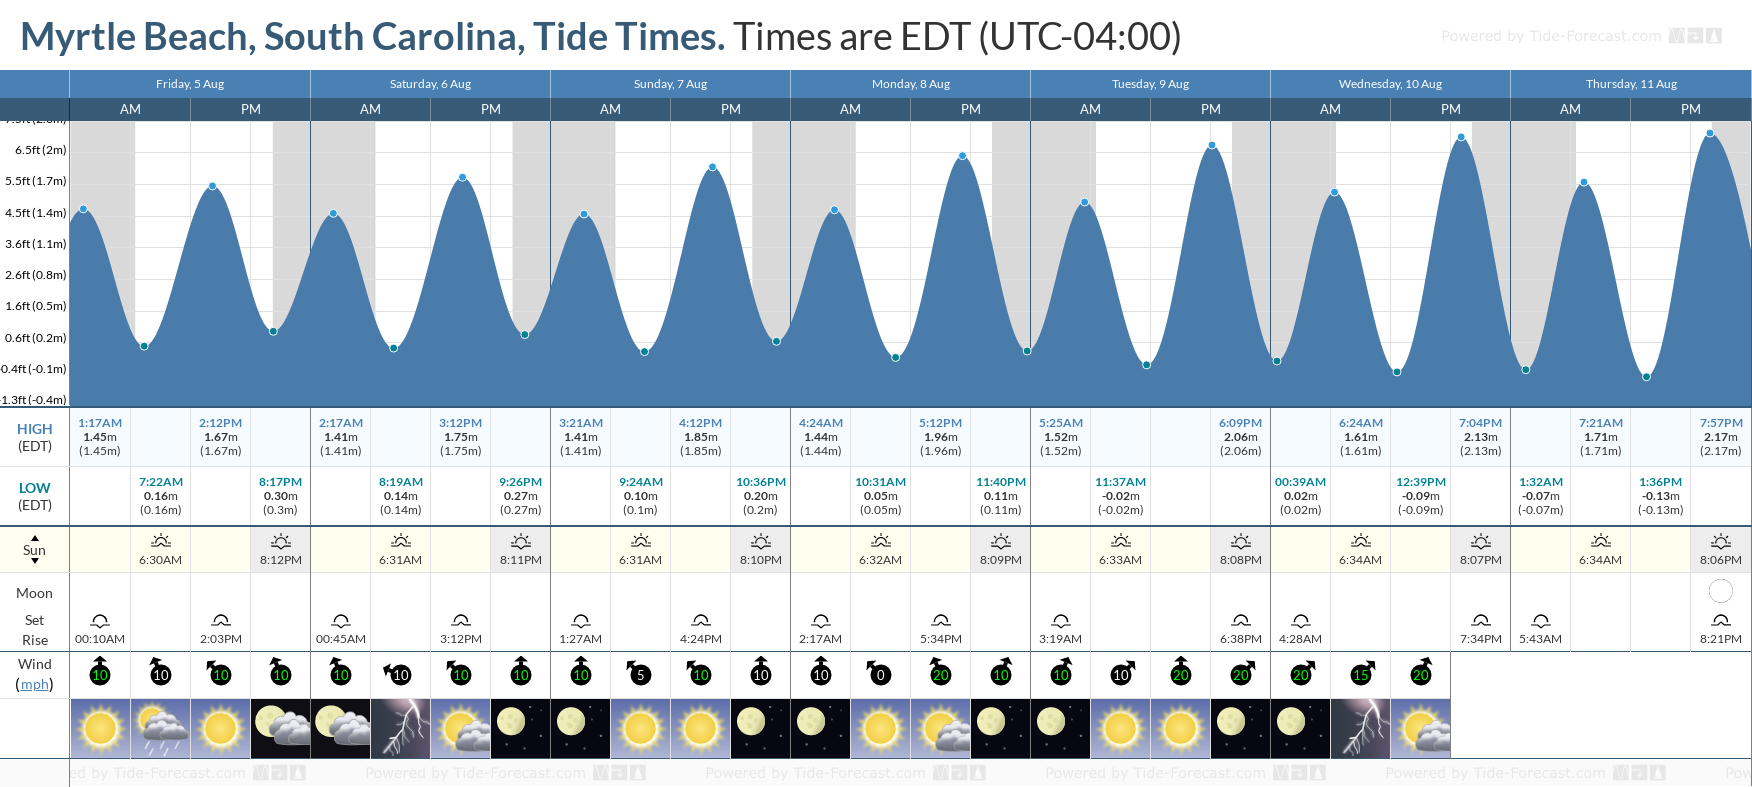 Myrtle Beach, South Carolina Tide Chart including high and low tide tide times for the next 7 days